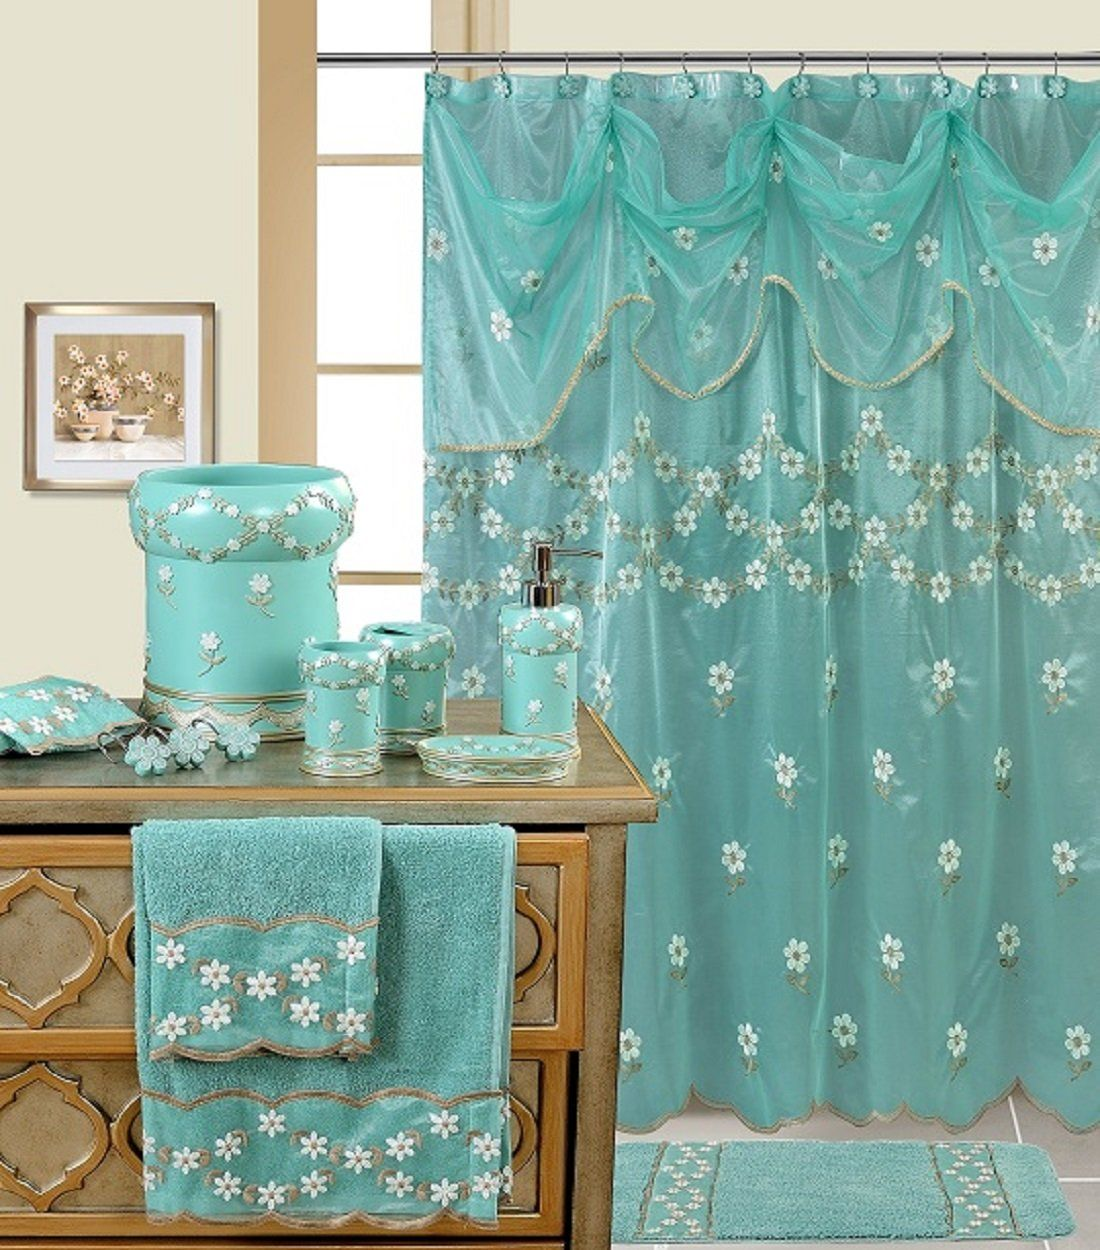 Search Results For 54x78 Shower Curtain